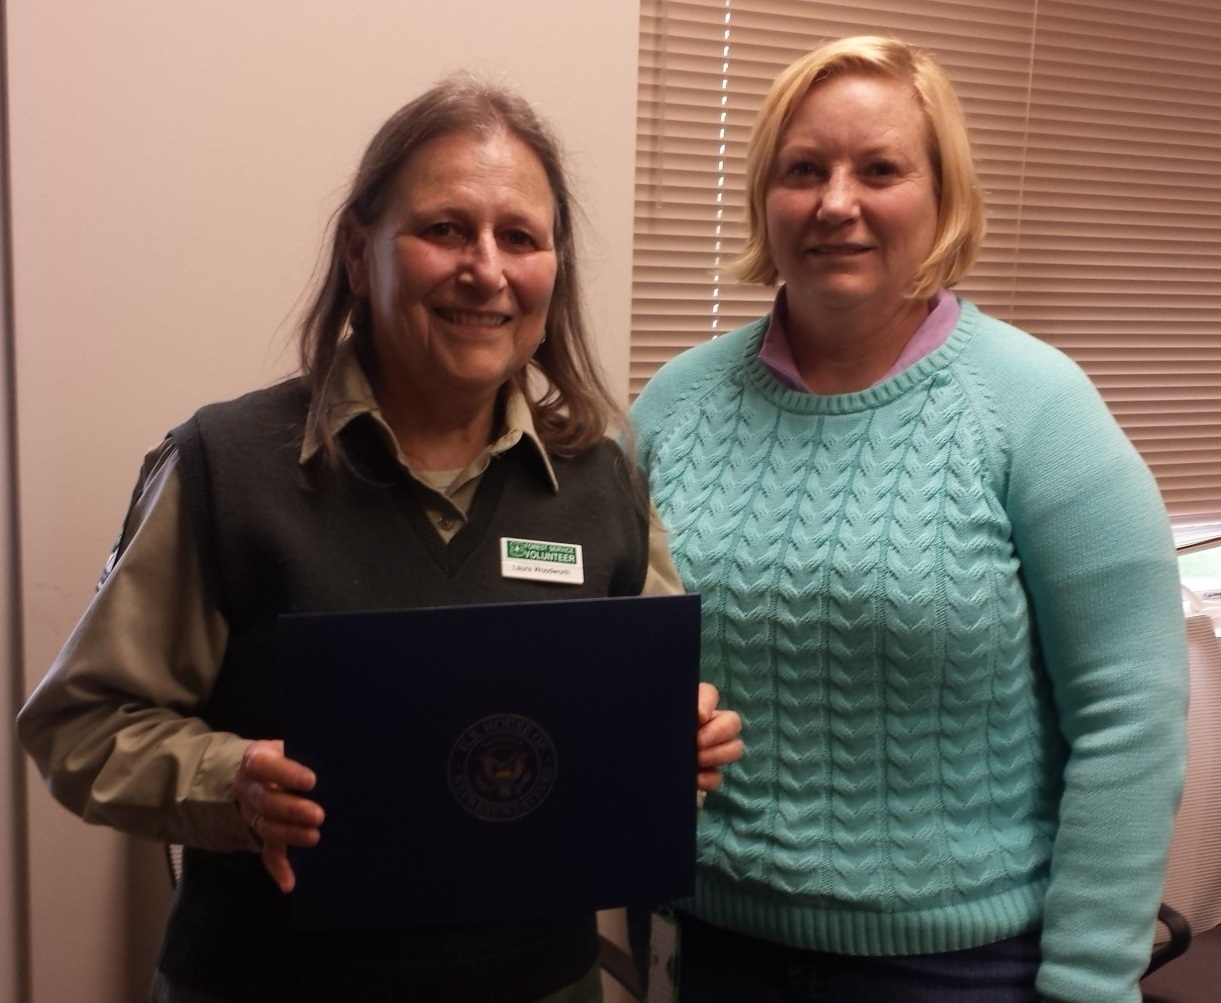 Laura Woodworth (L) proudly displays her Congressional Certificate of Service that was presented by